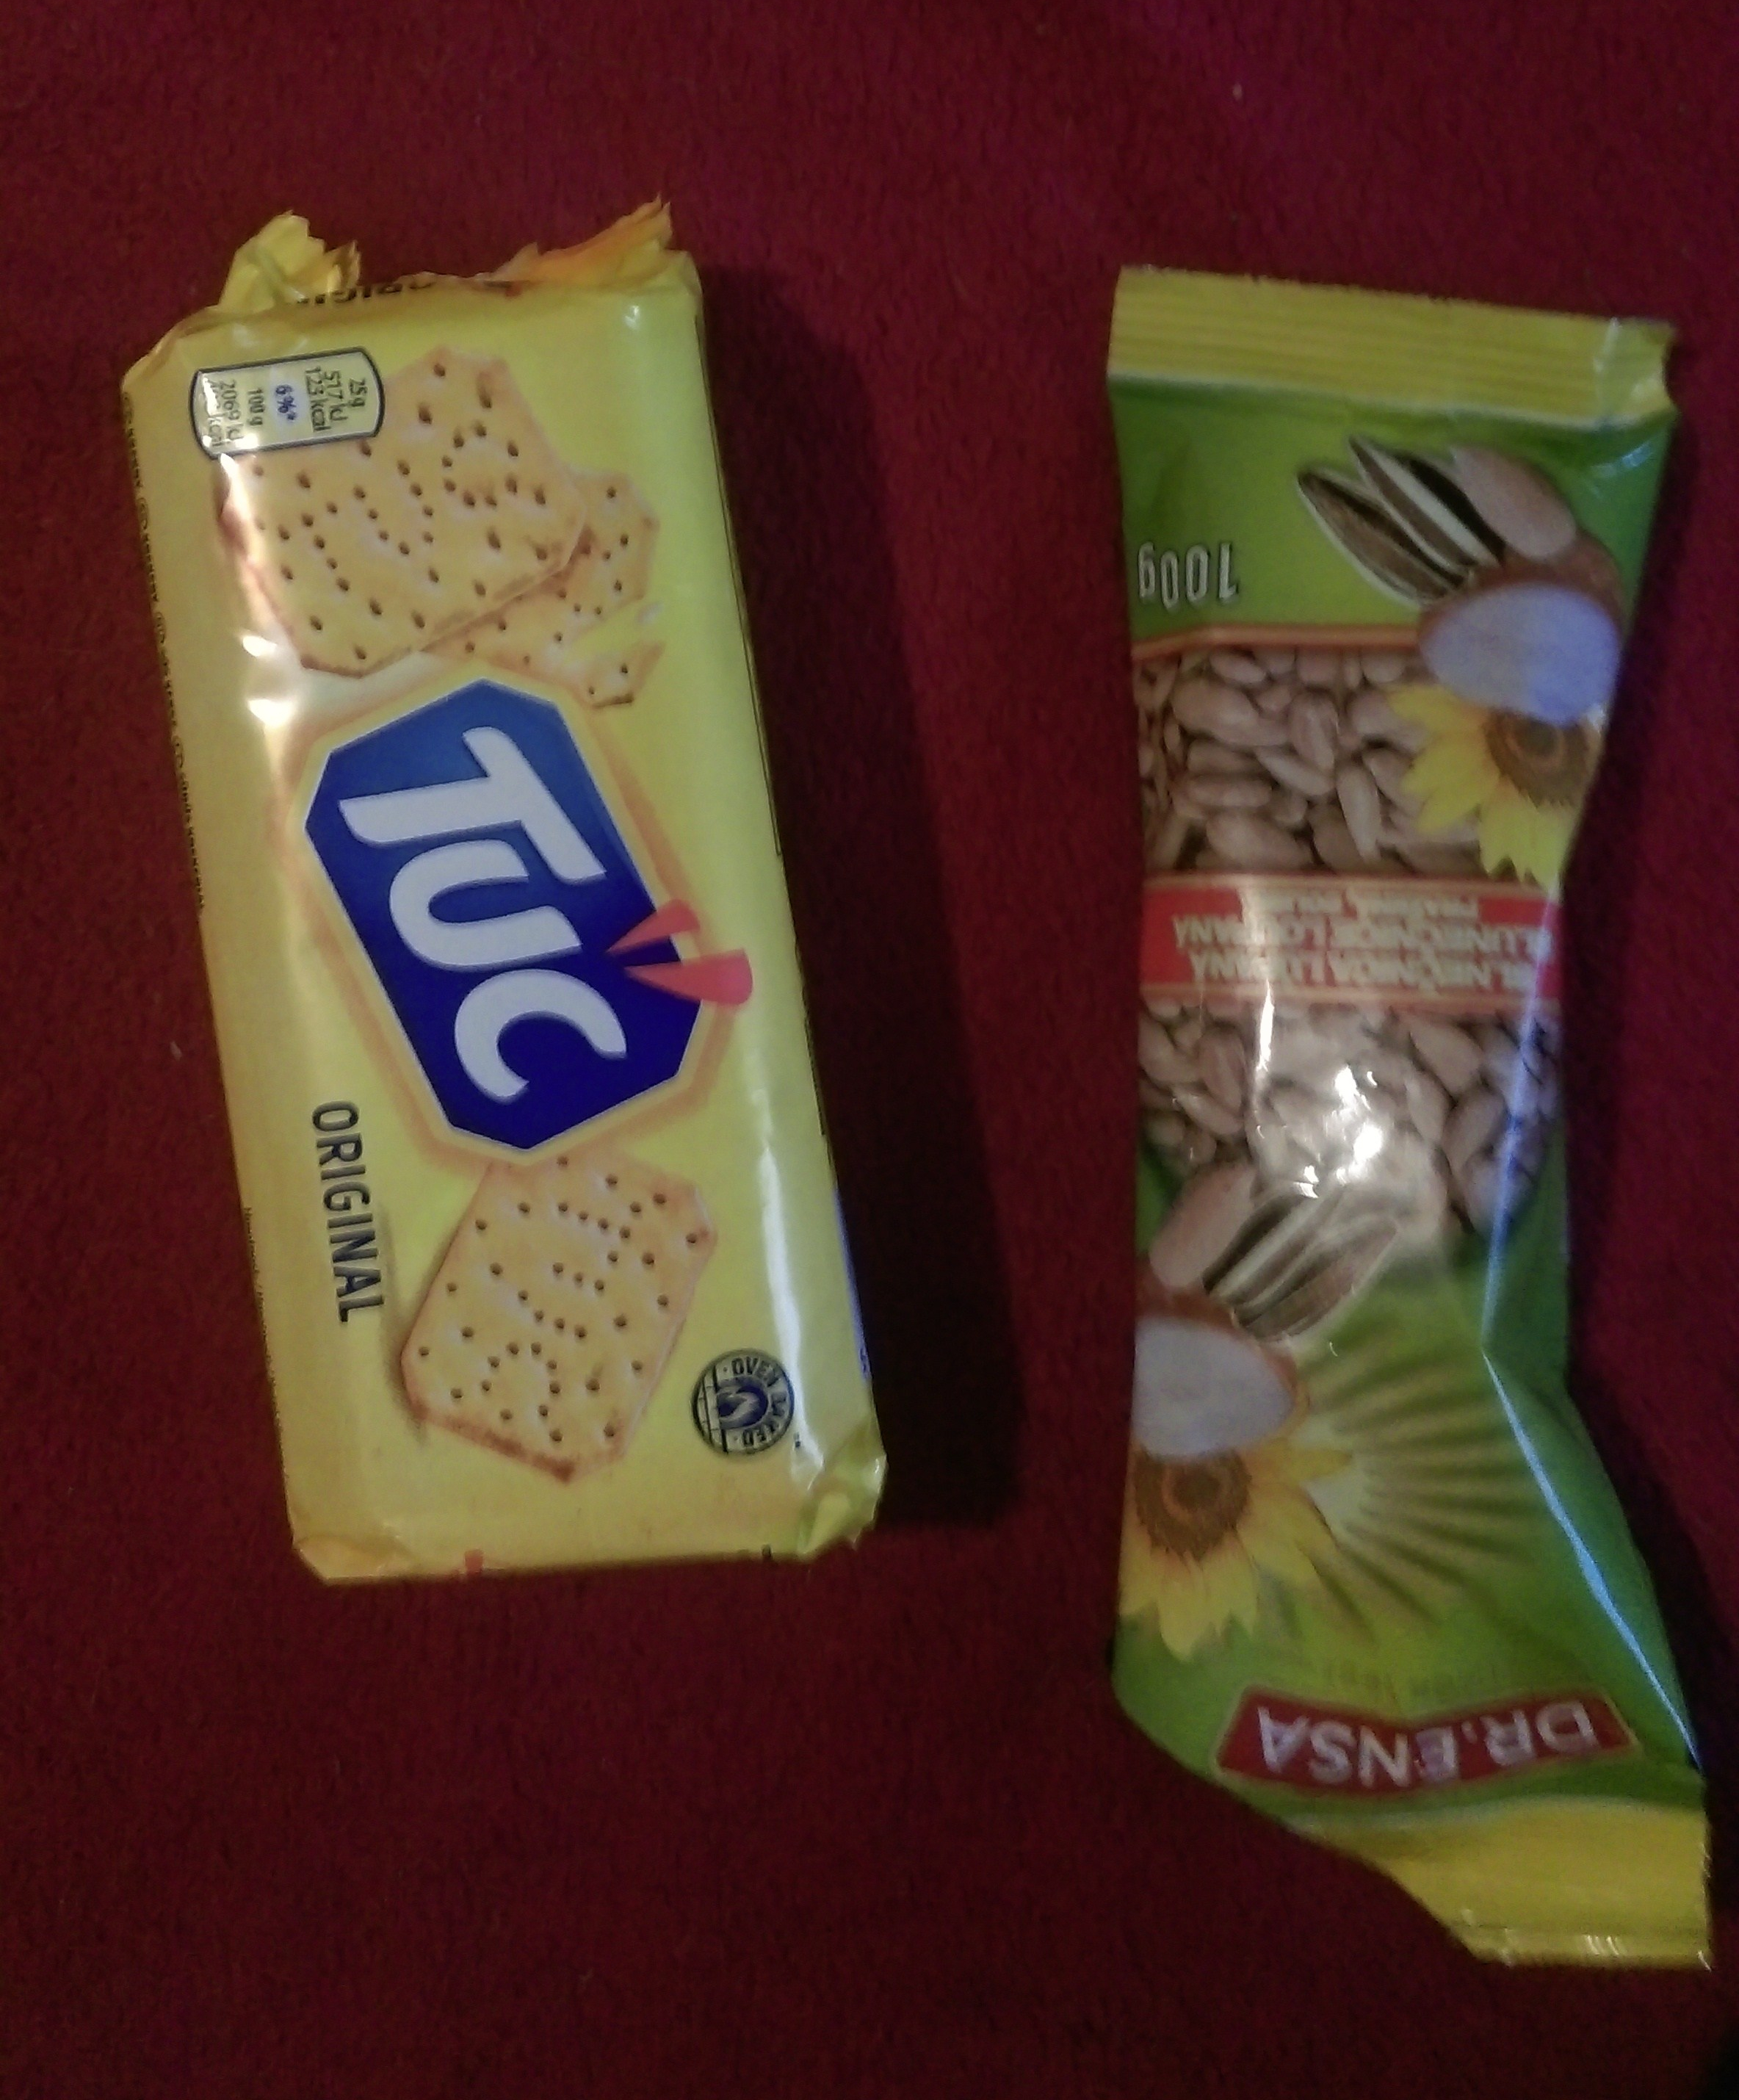 Cookies and dry nuts - elemi fuentes - trekking basics